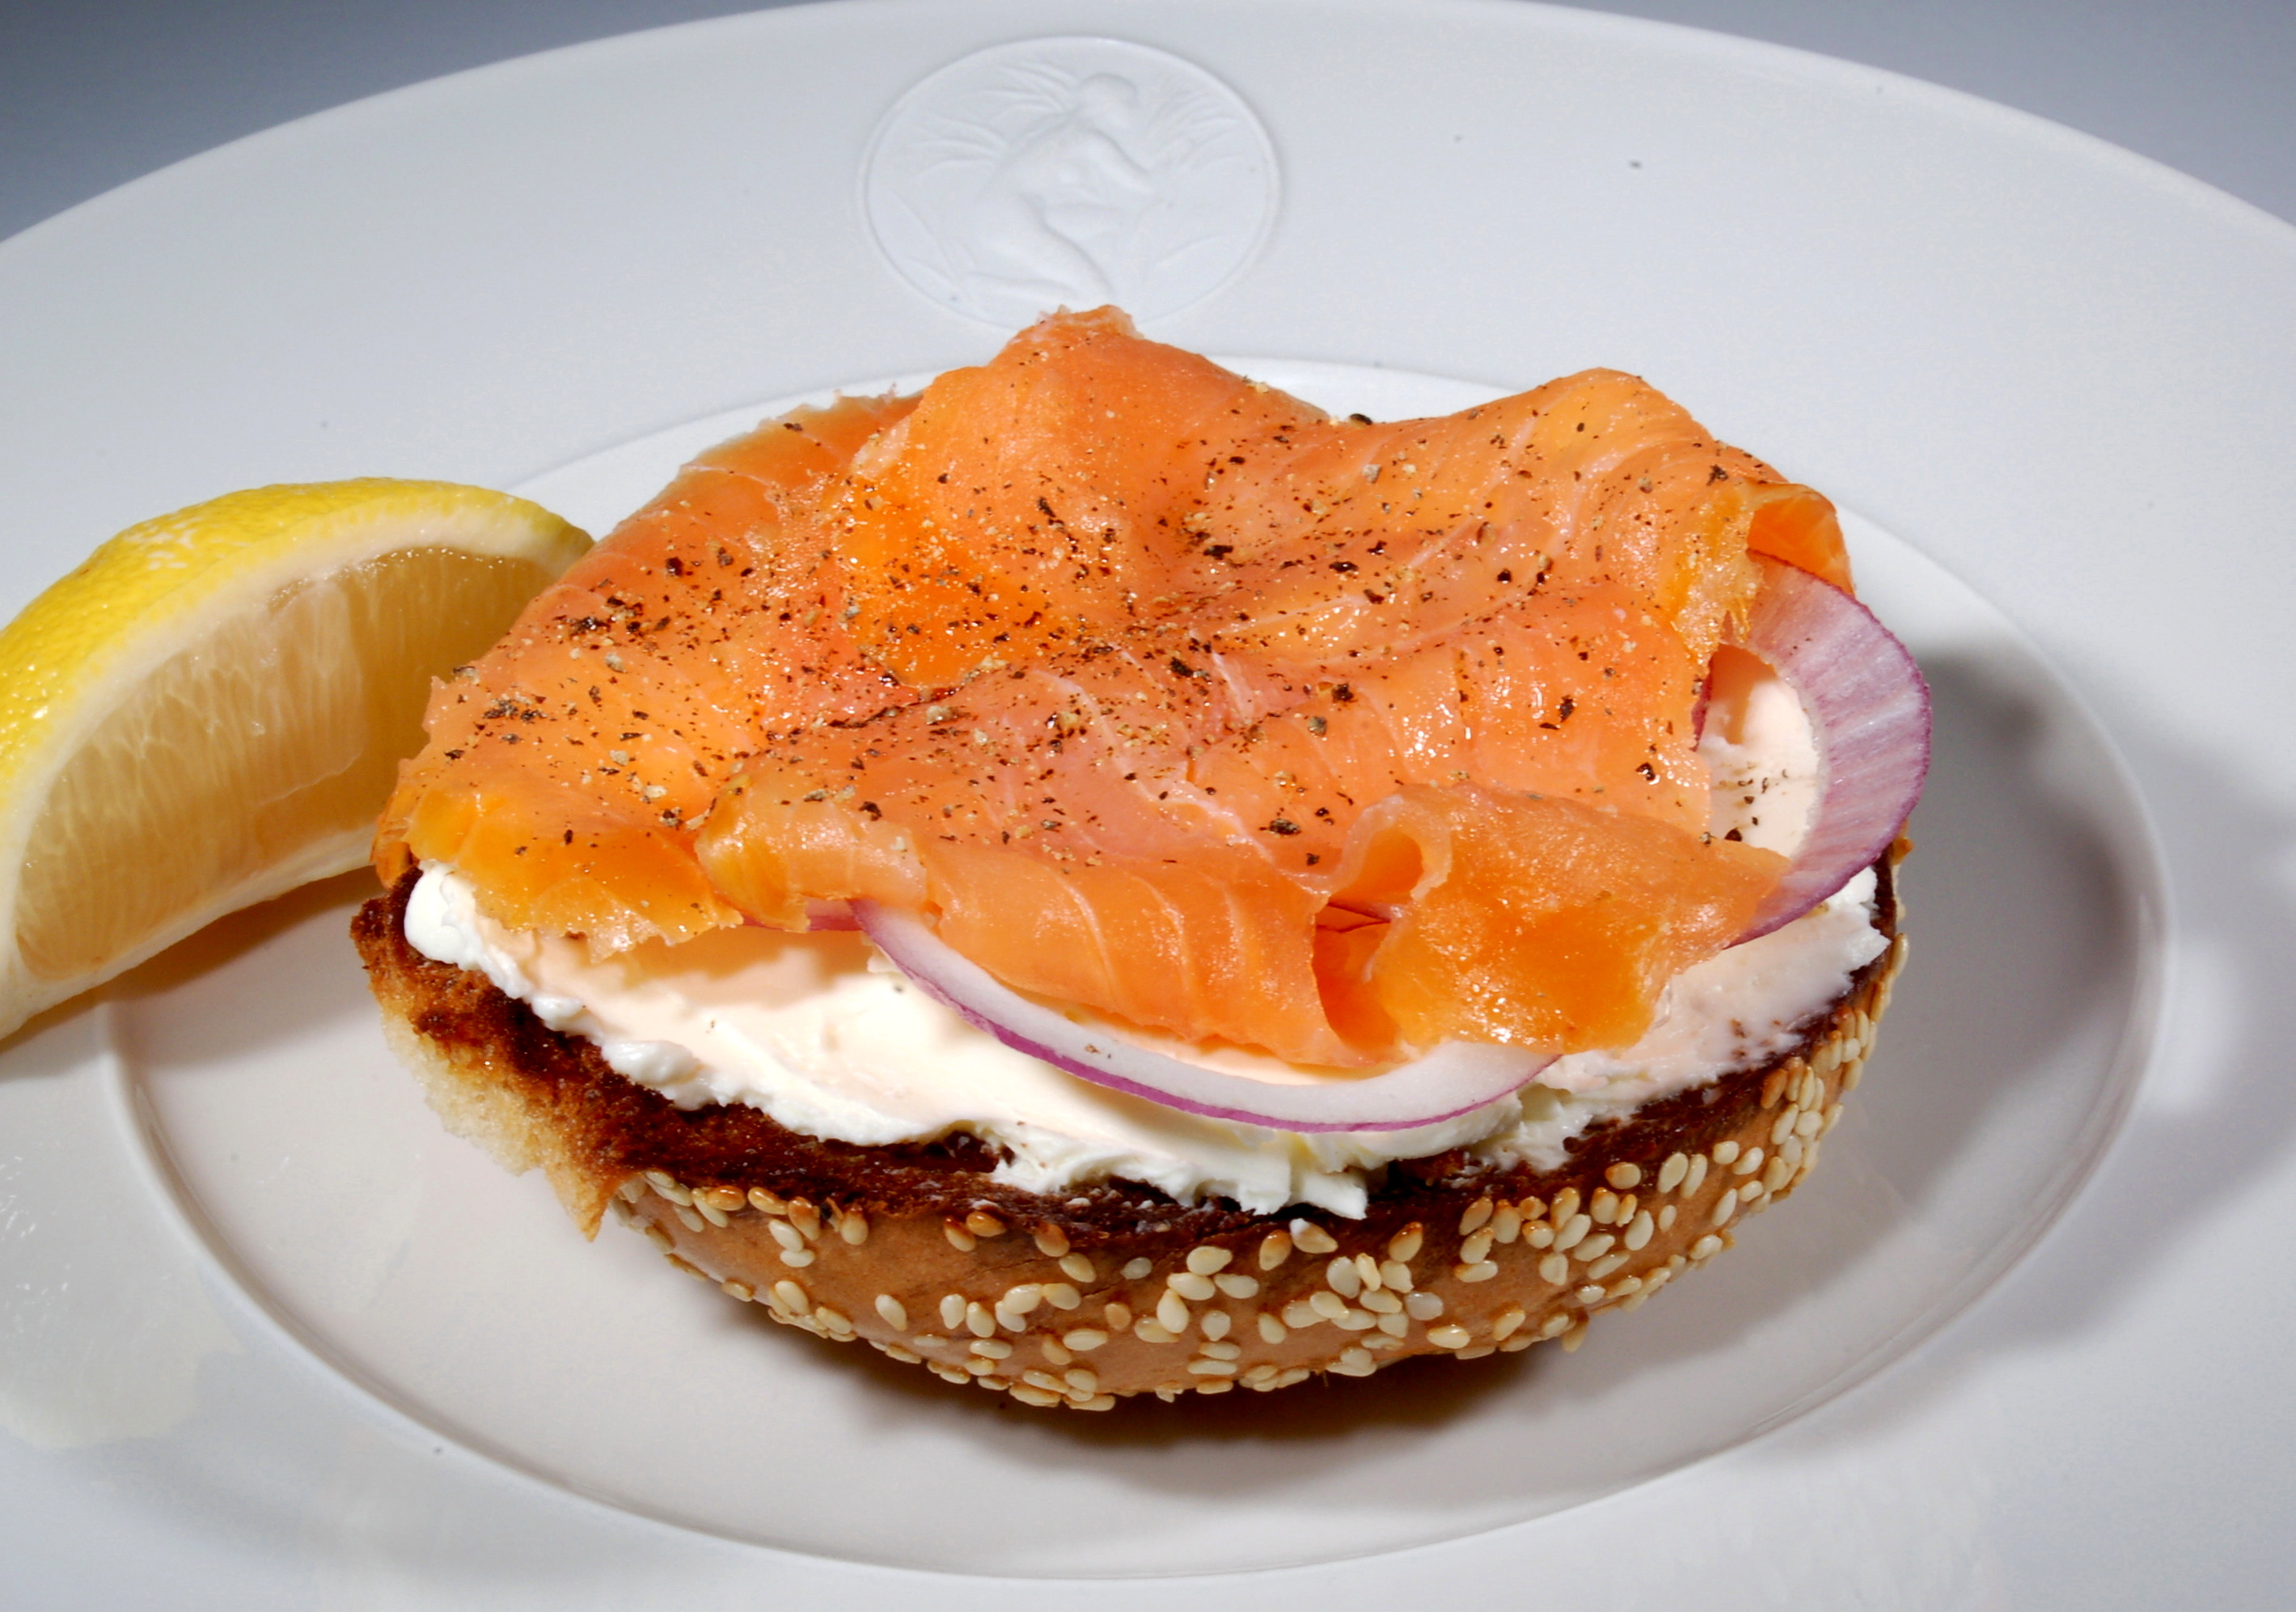 Toasted Bagel, Cream Cheese, Smoked Salmon | The Unconfidential Cook